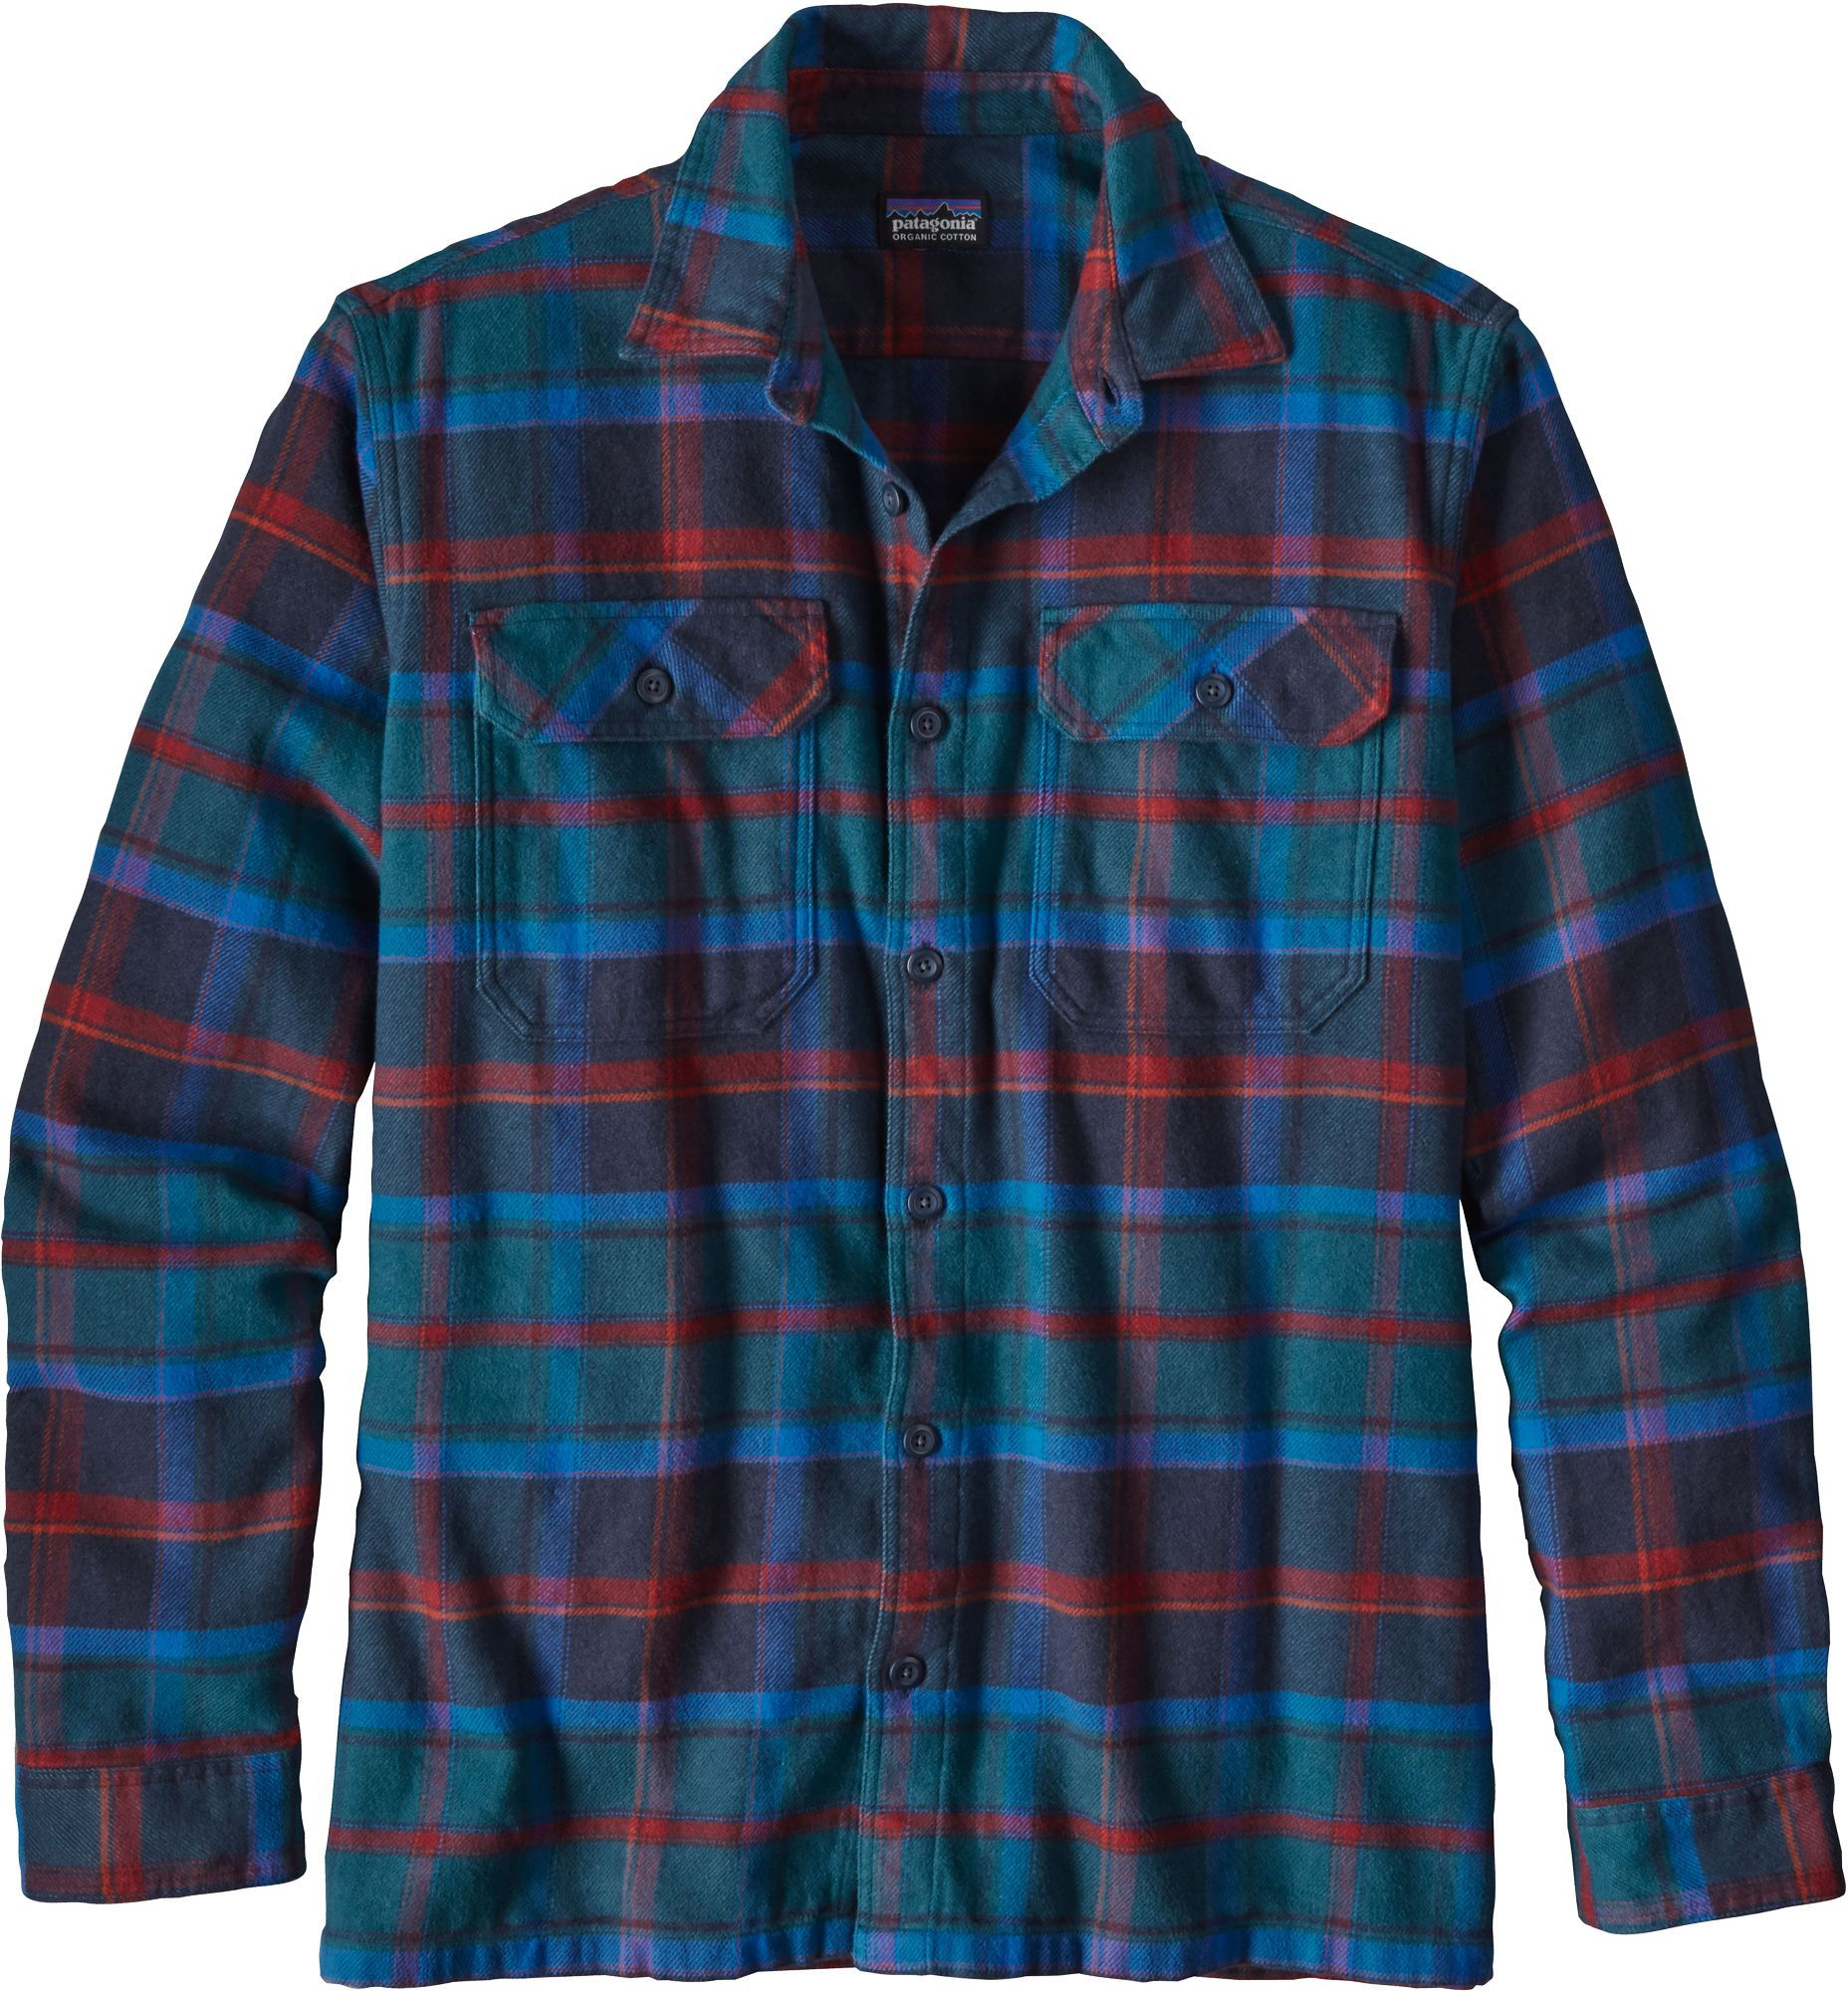 Button up flannel shirts  Patagonia Menus Fjord Flannel Button Up Long Sleeve Shirt  Products